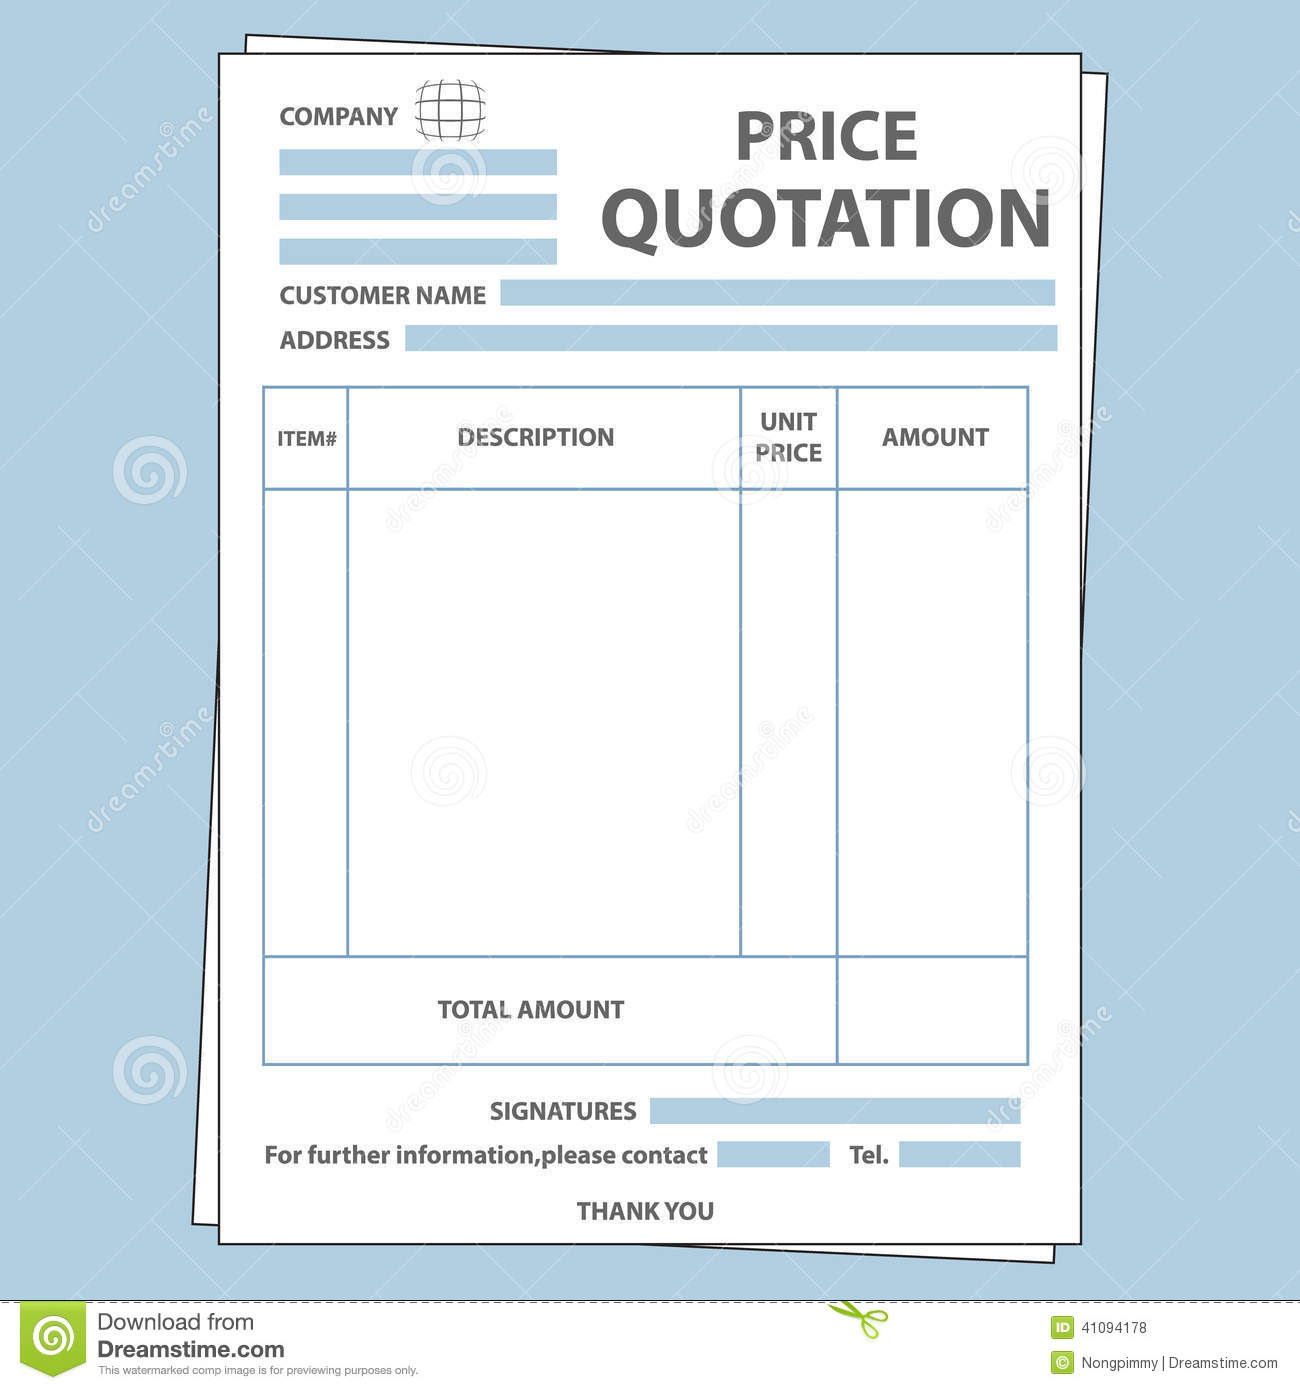 quotation form illustration blank sale price 41094178